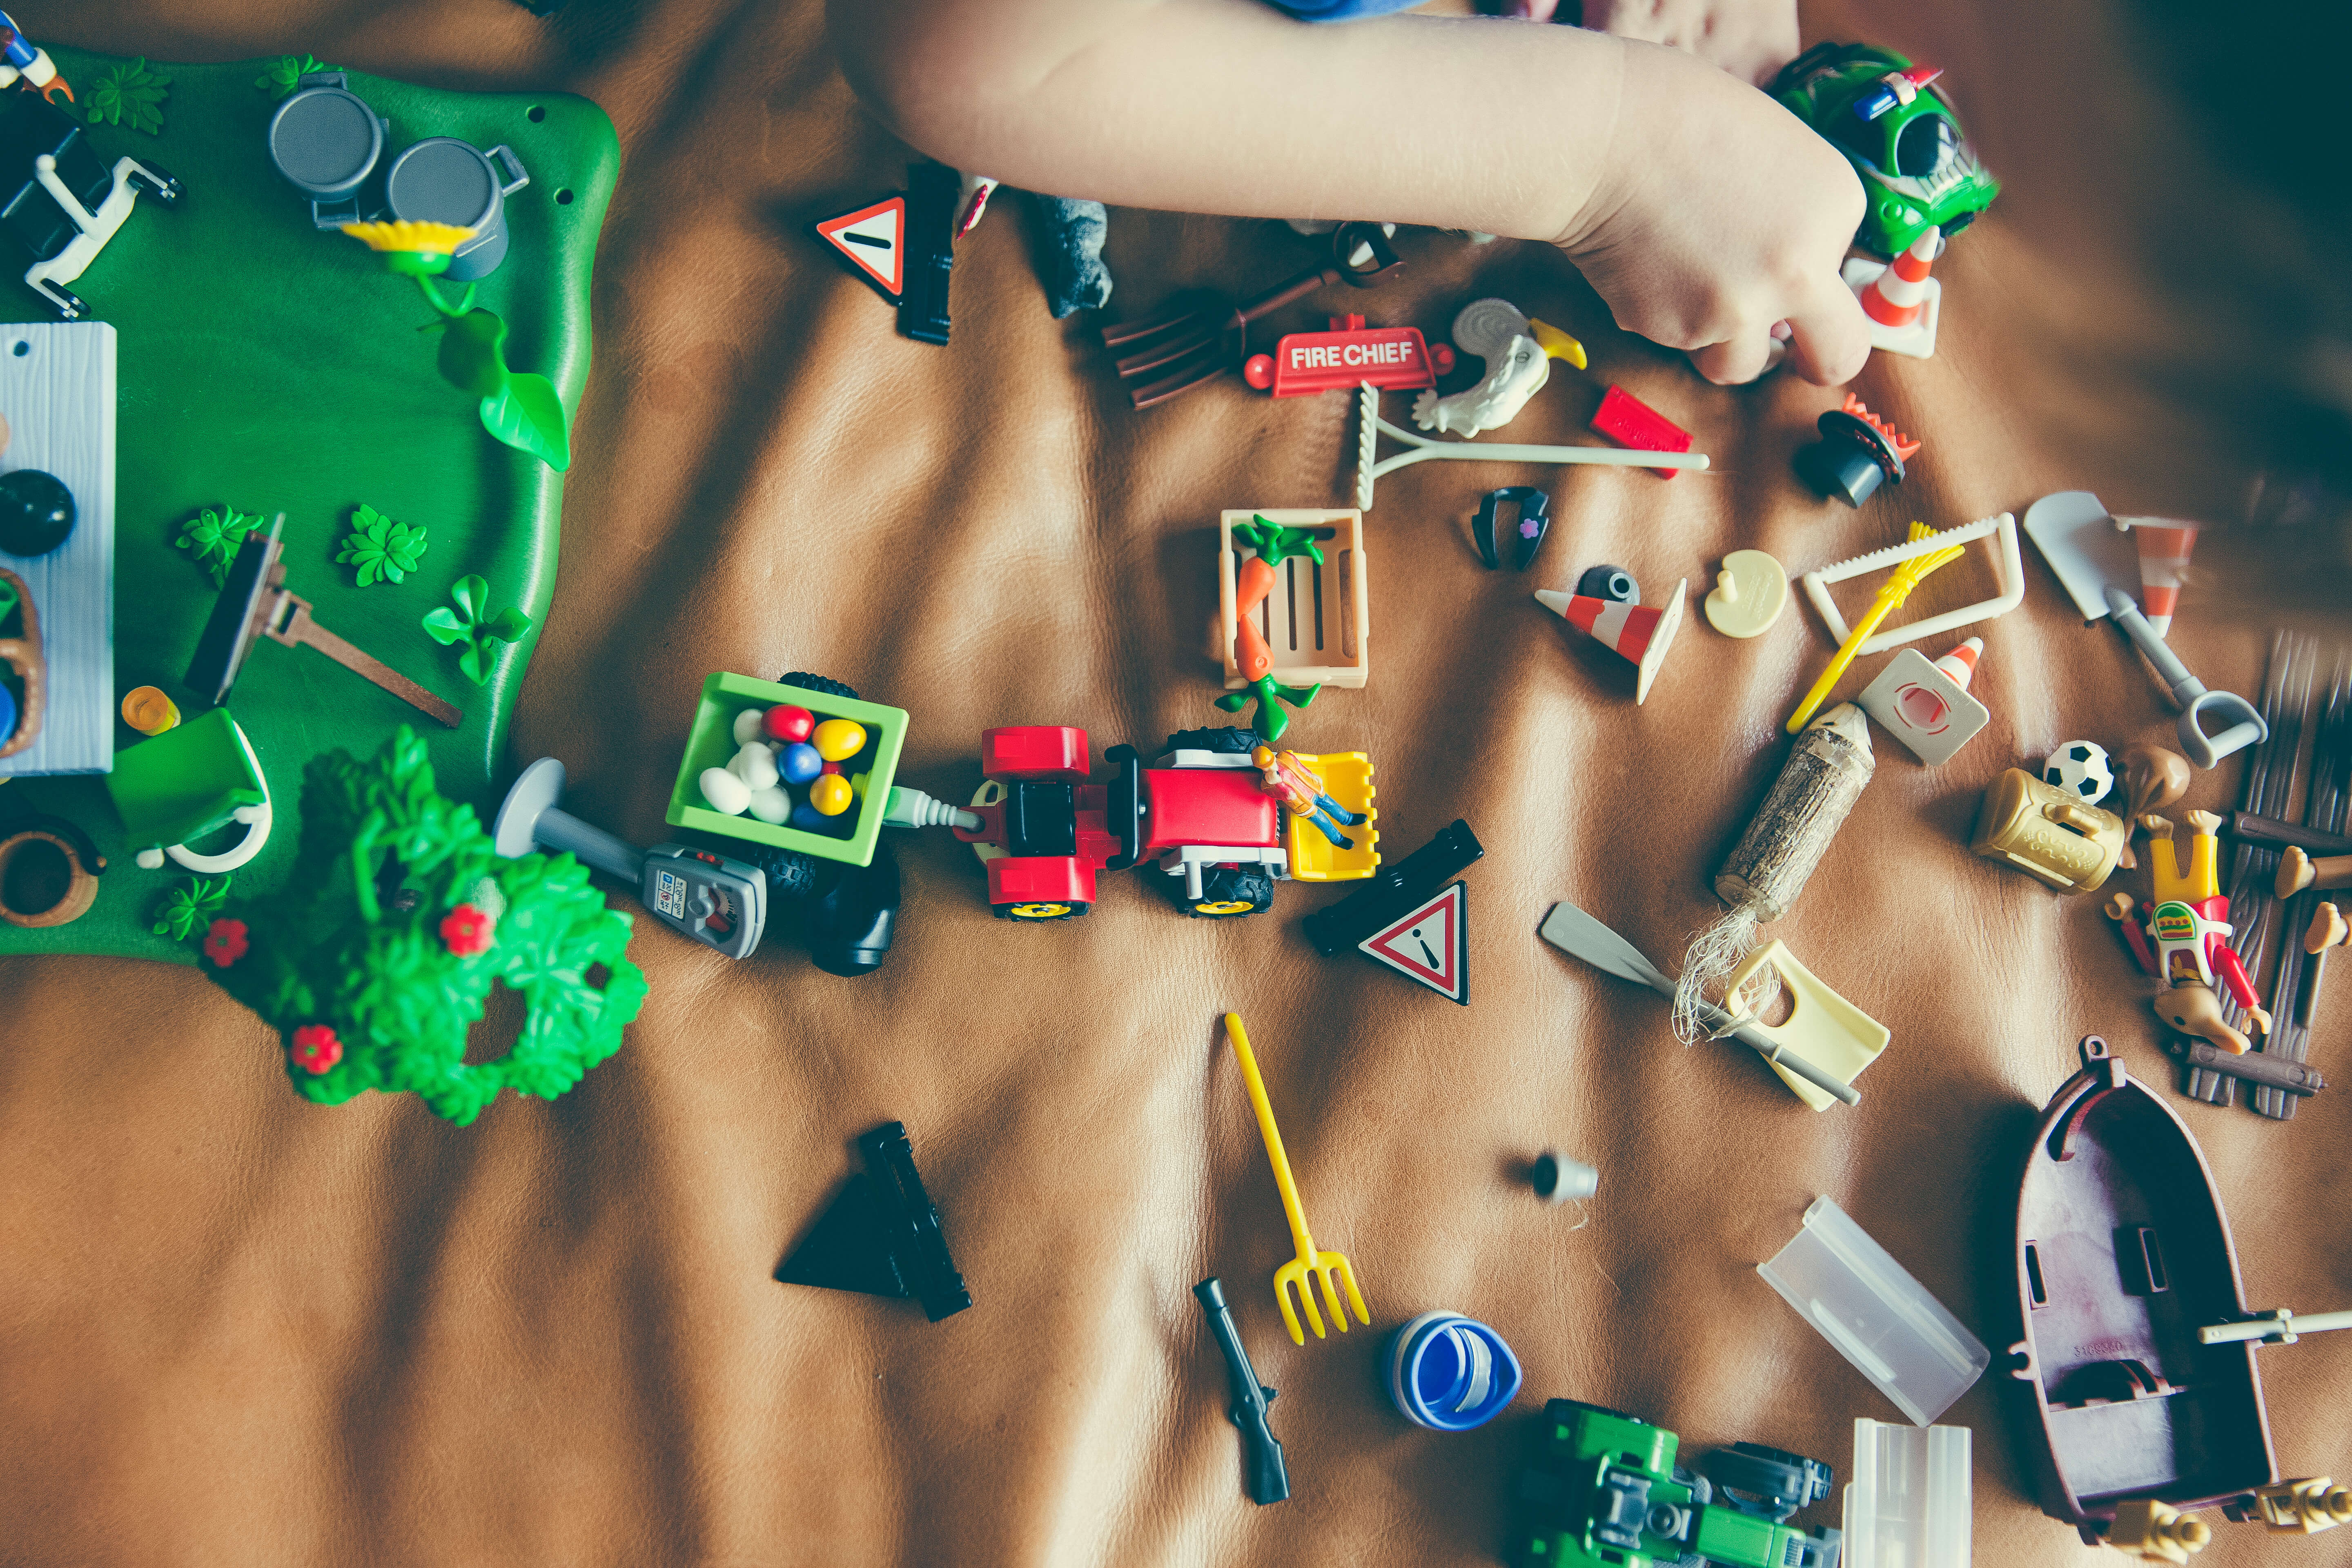 toys sread out on a carpet as a child plays with them making learning fun